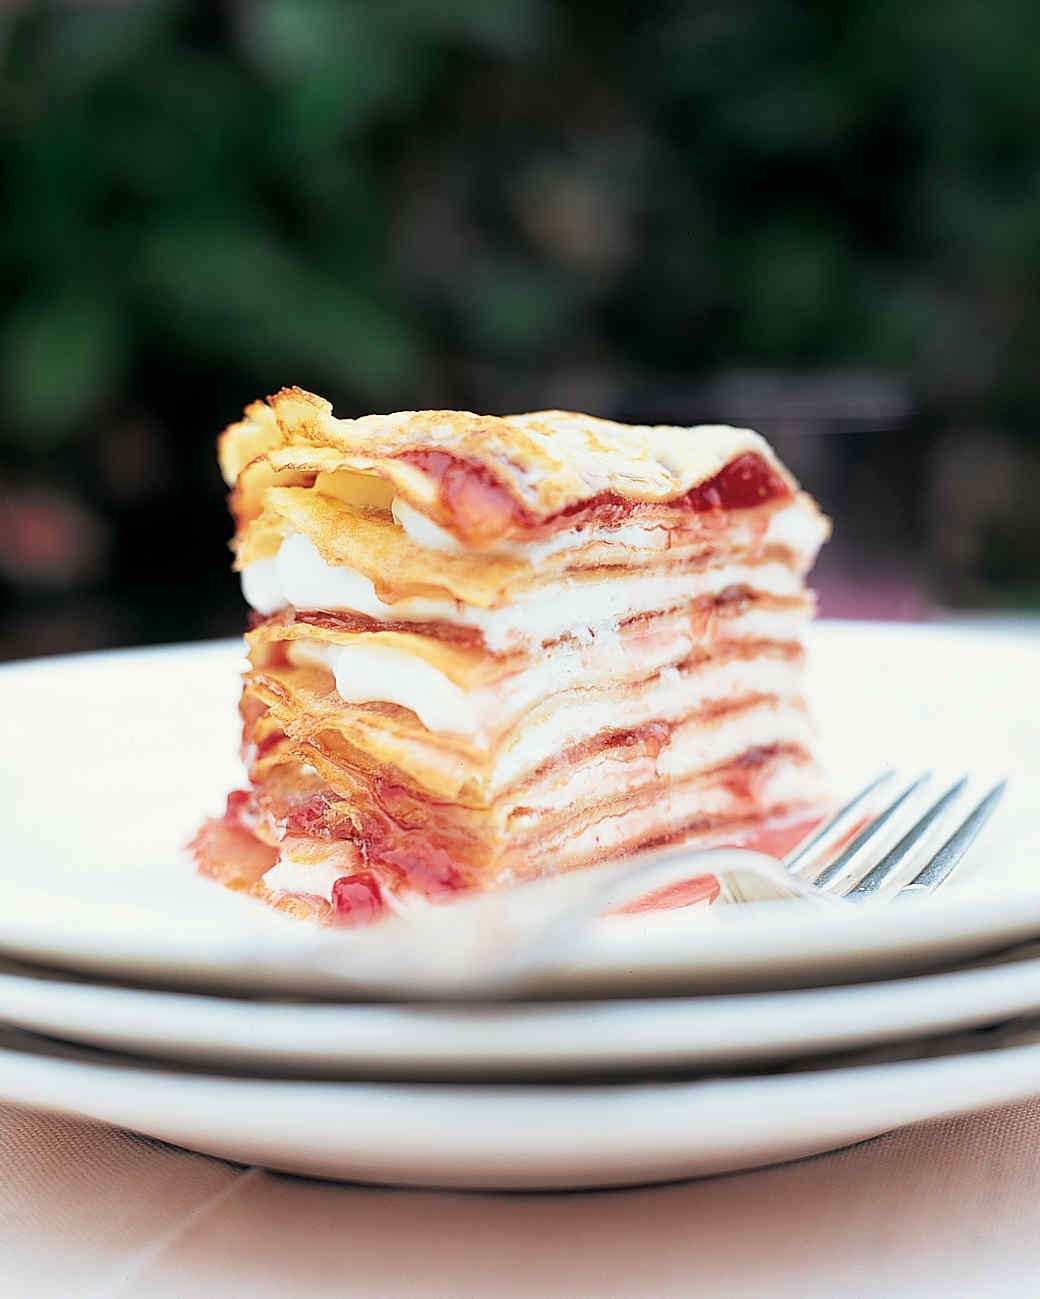 Crepe Gateau with Strawberry Preserves and Creme Fraiche